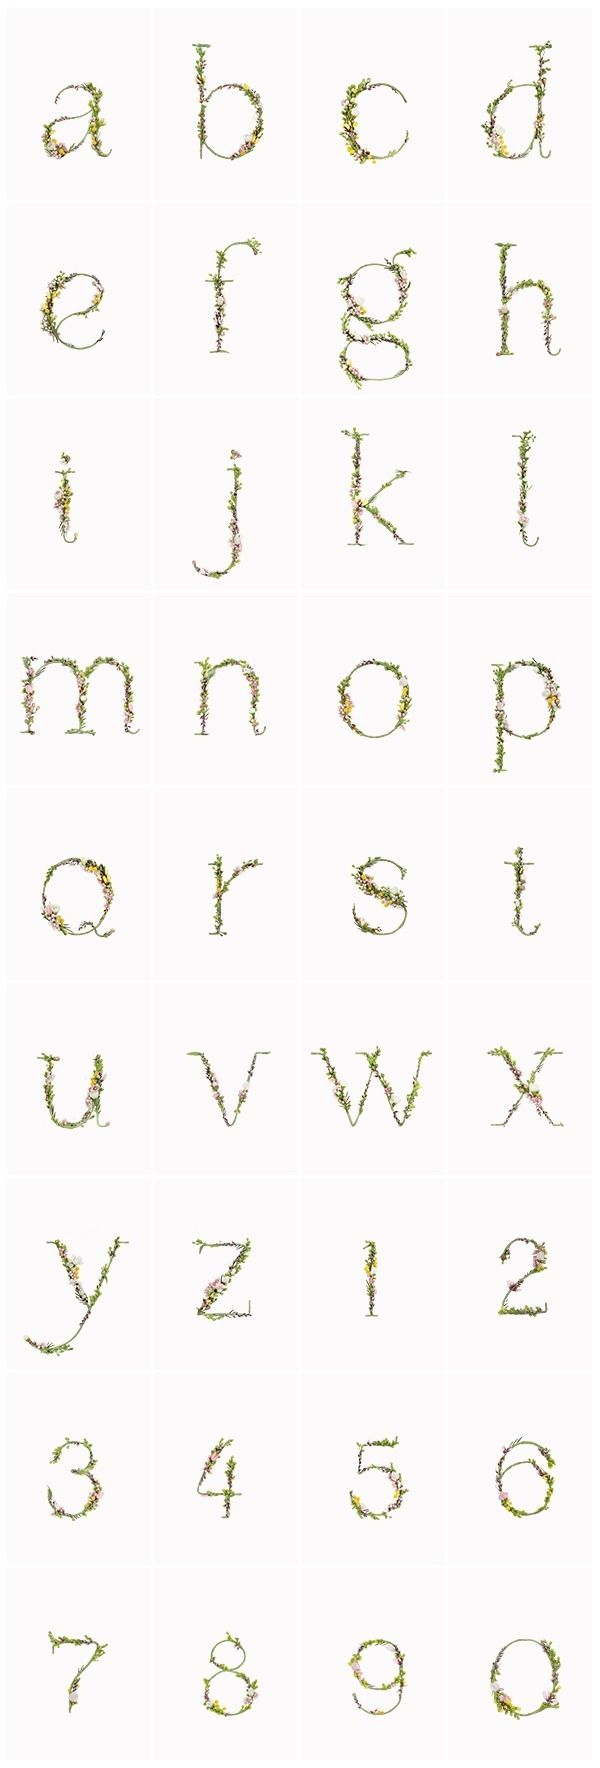 Alice Mouoru, an art director at Zero agency in Moscow, painstakingly created the most beautifulalphabet set using parts of flowers and plants.         All images© Zero Agency. V…